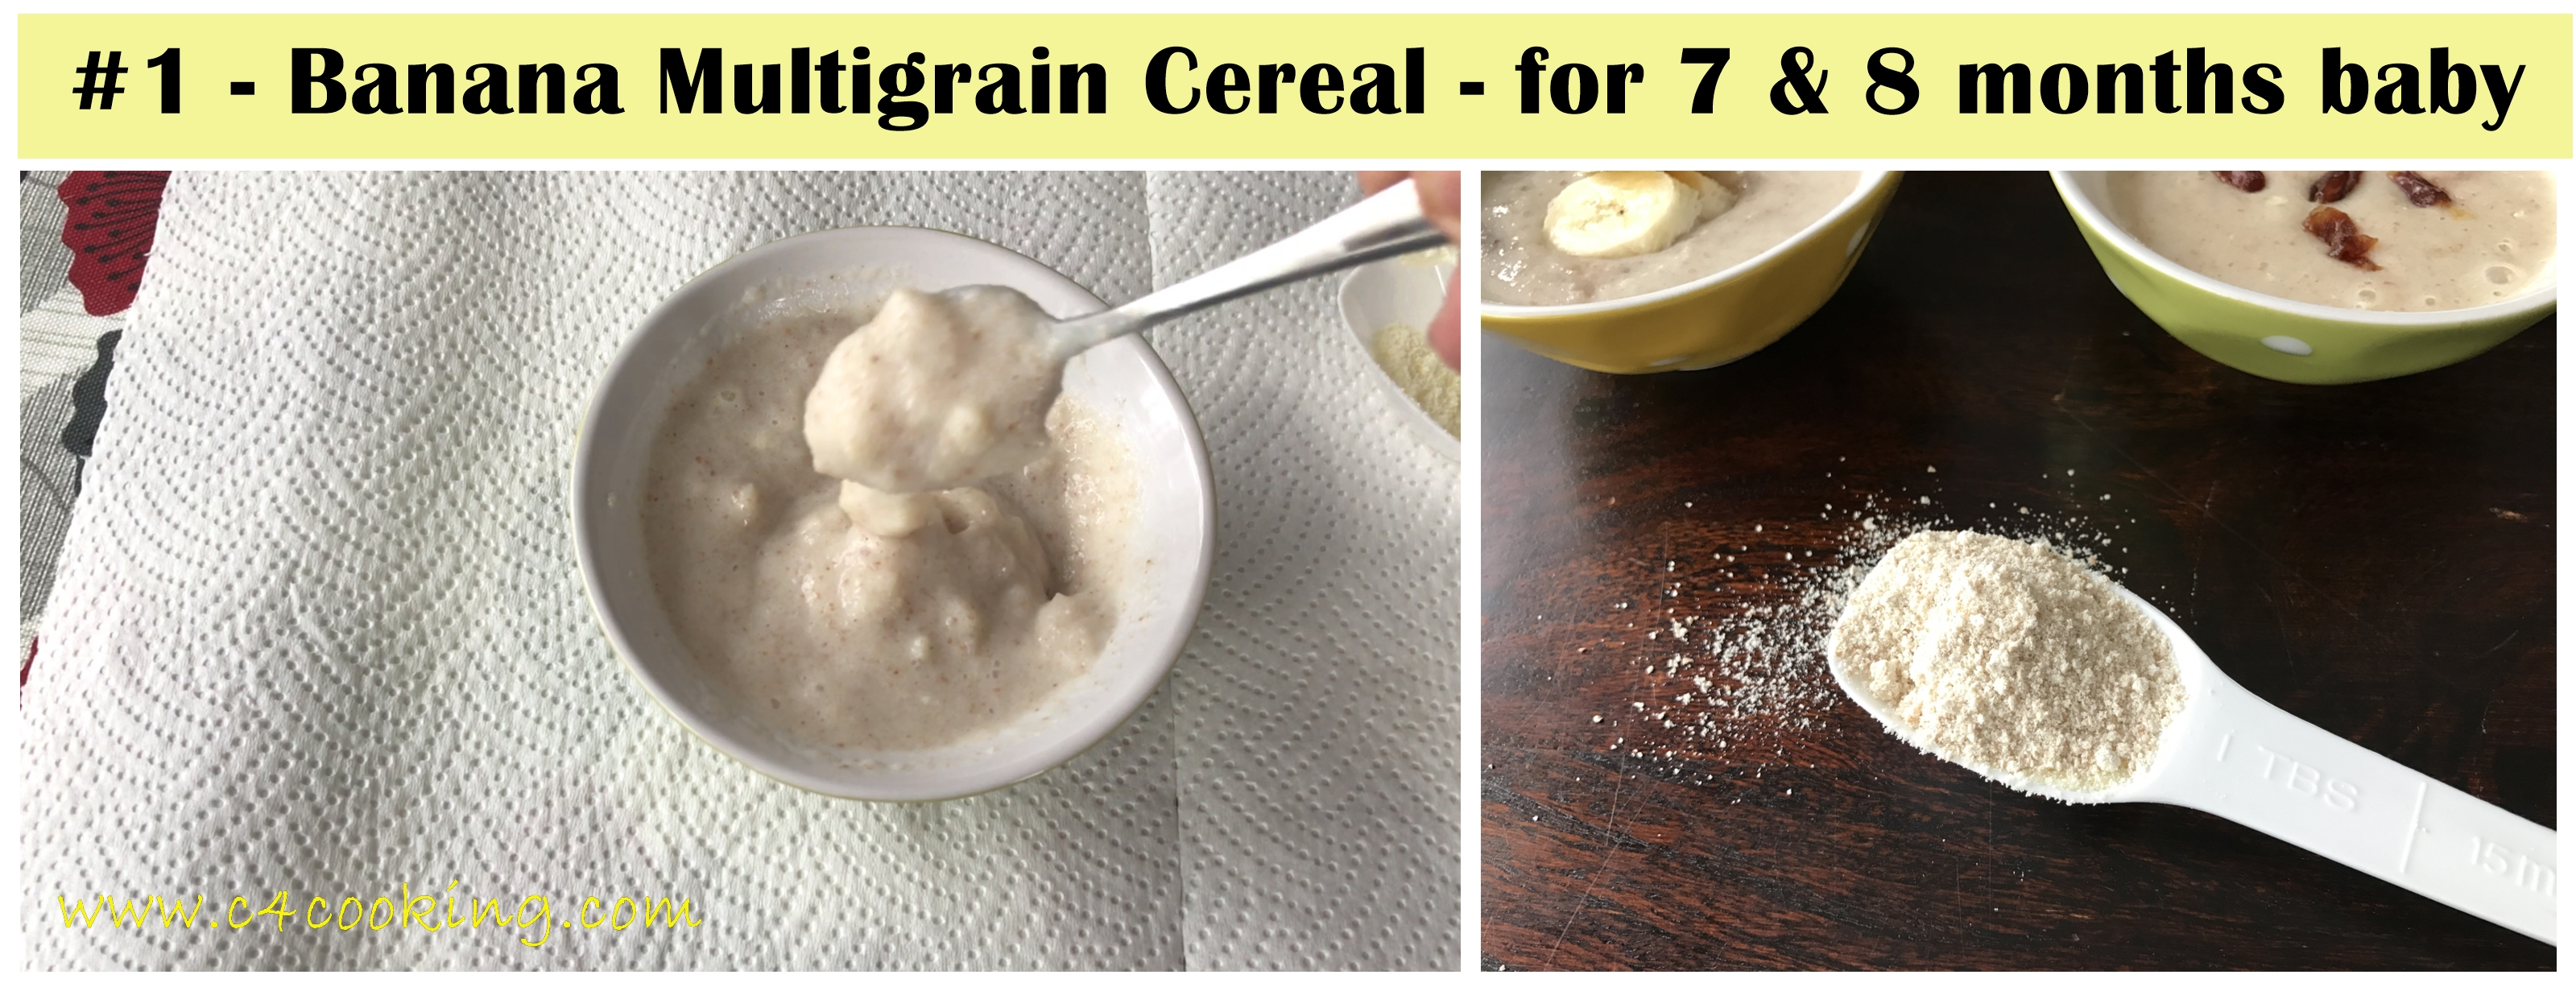 8 months baby multigrain cereal recipe